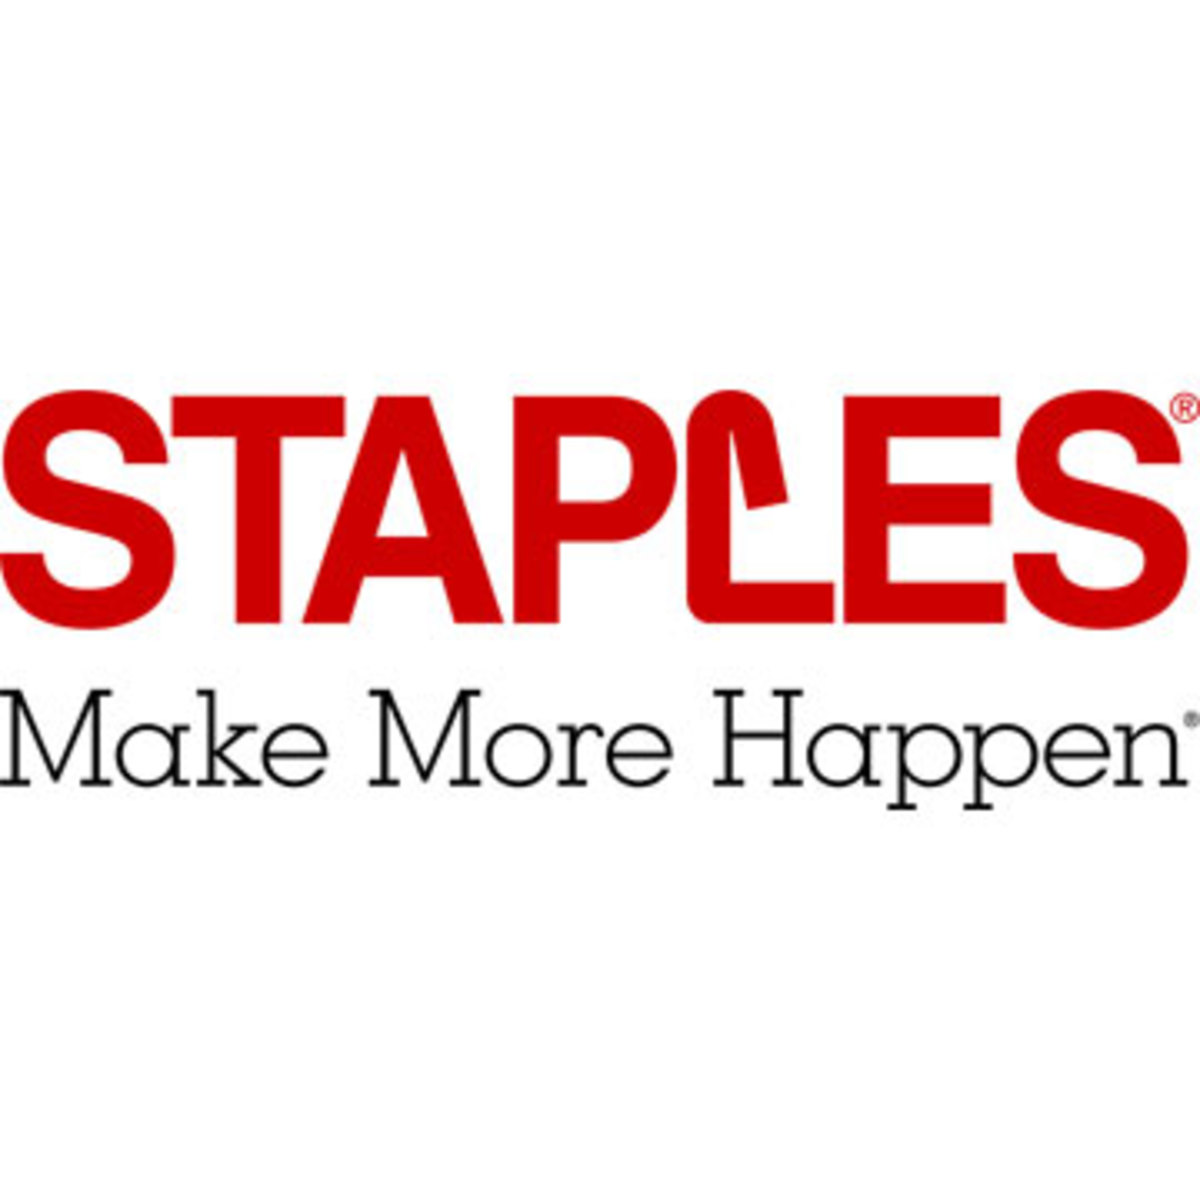 2016 Staples Logo (1)